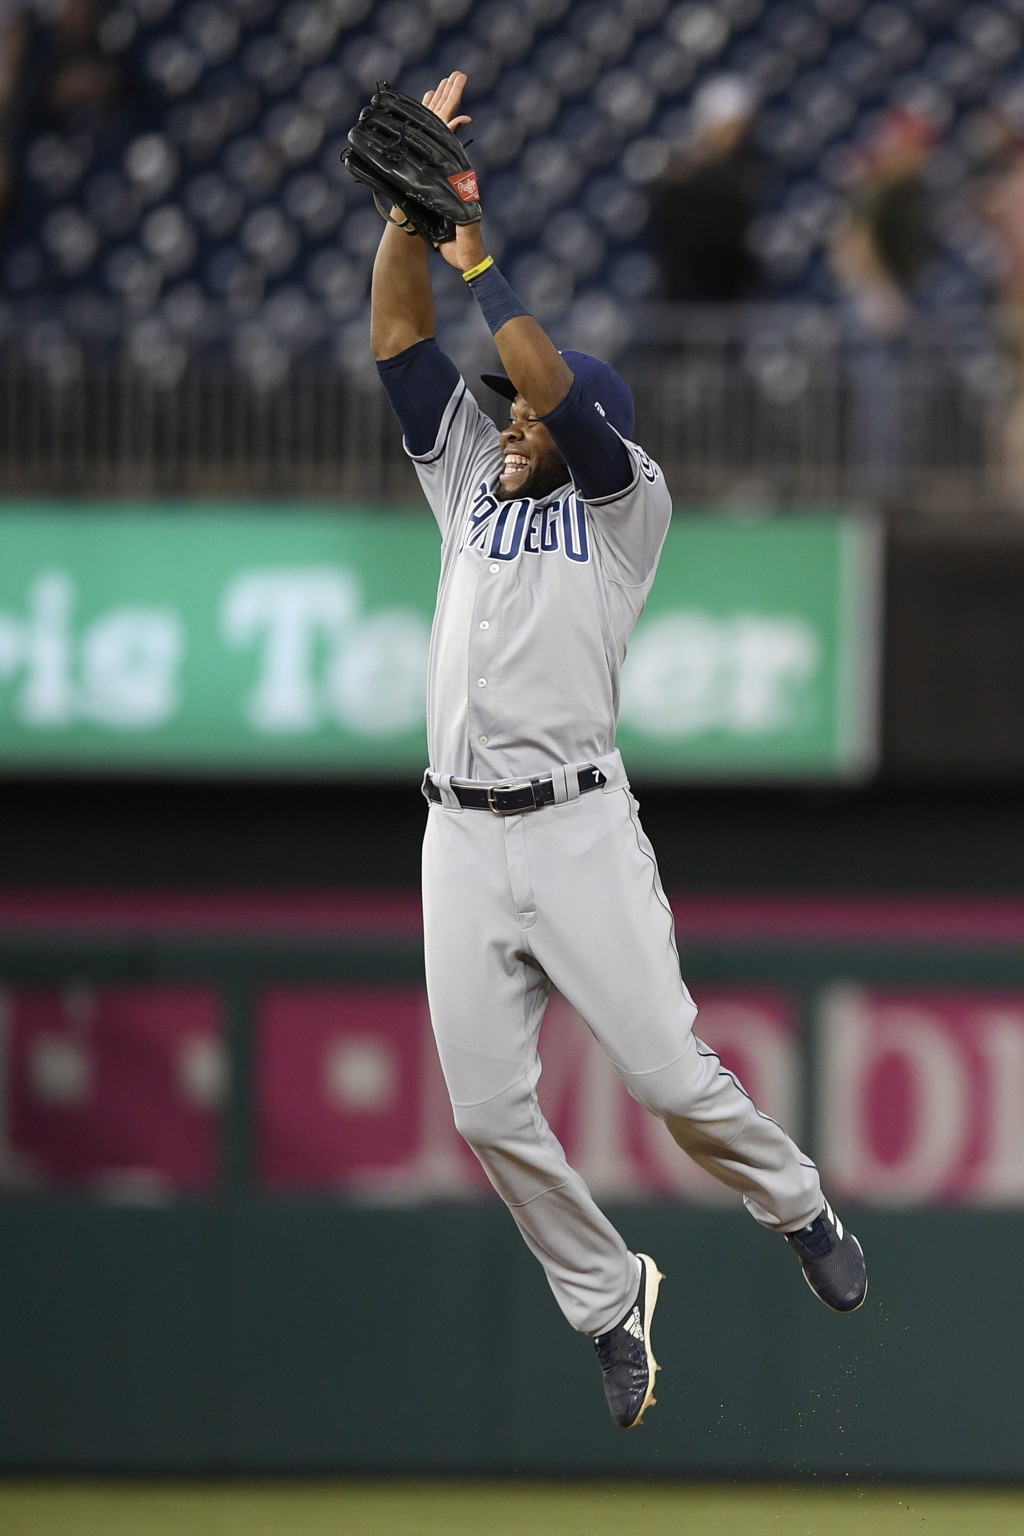 San Diego Padres' Manuel Margot celebrates after a baseball game against the Washington Nationals, Saturday, April 27, 2019, in Washington. (AP Photo/